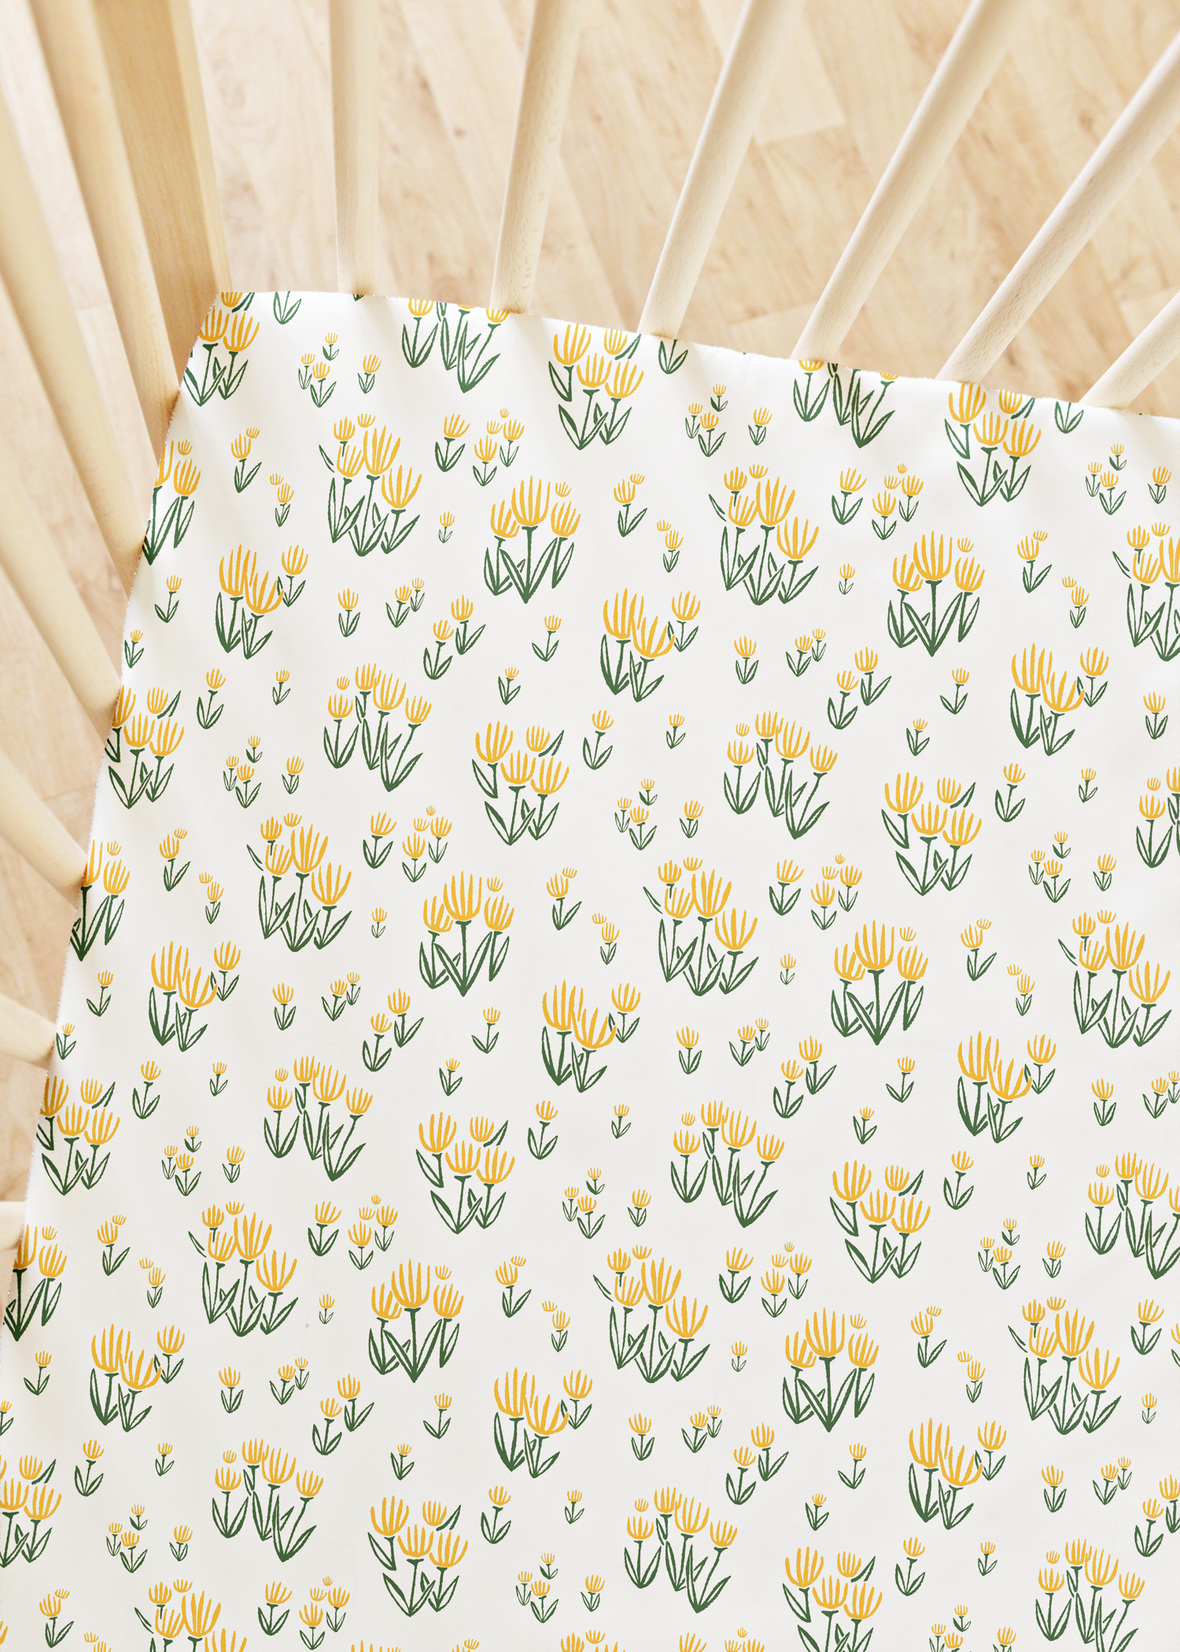 Sunny Patches Crib Sheet 2.2